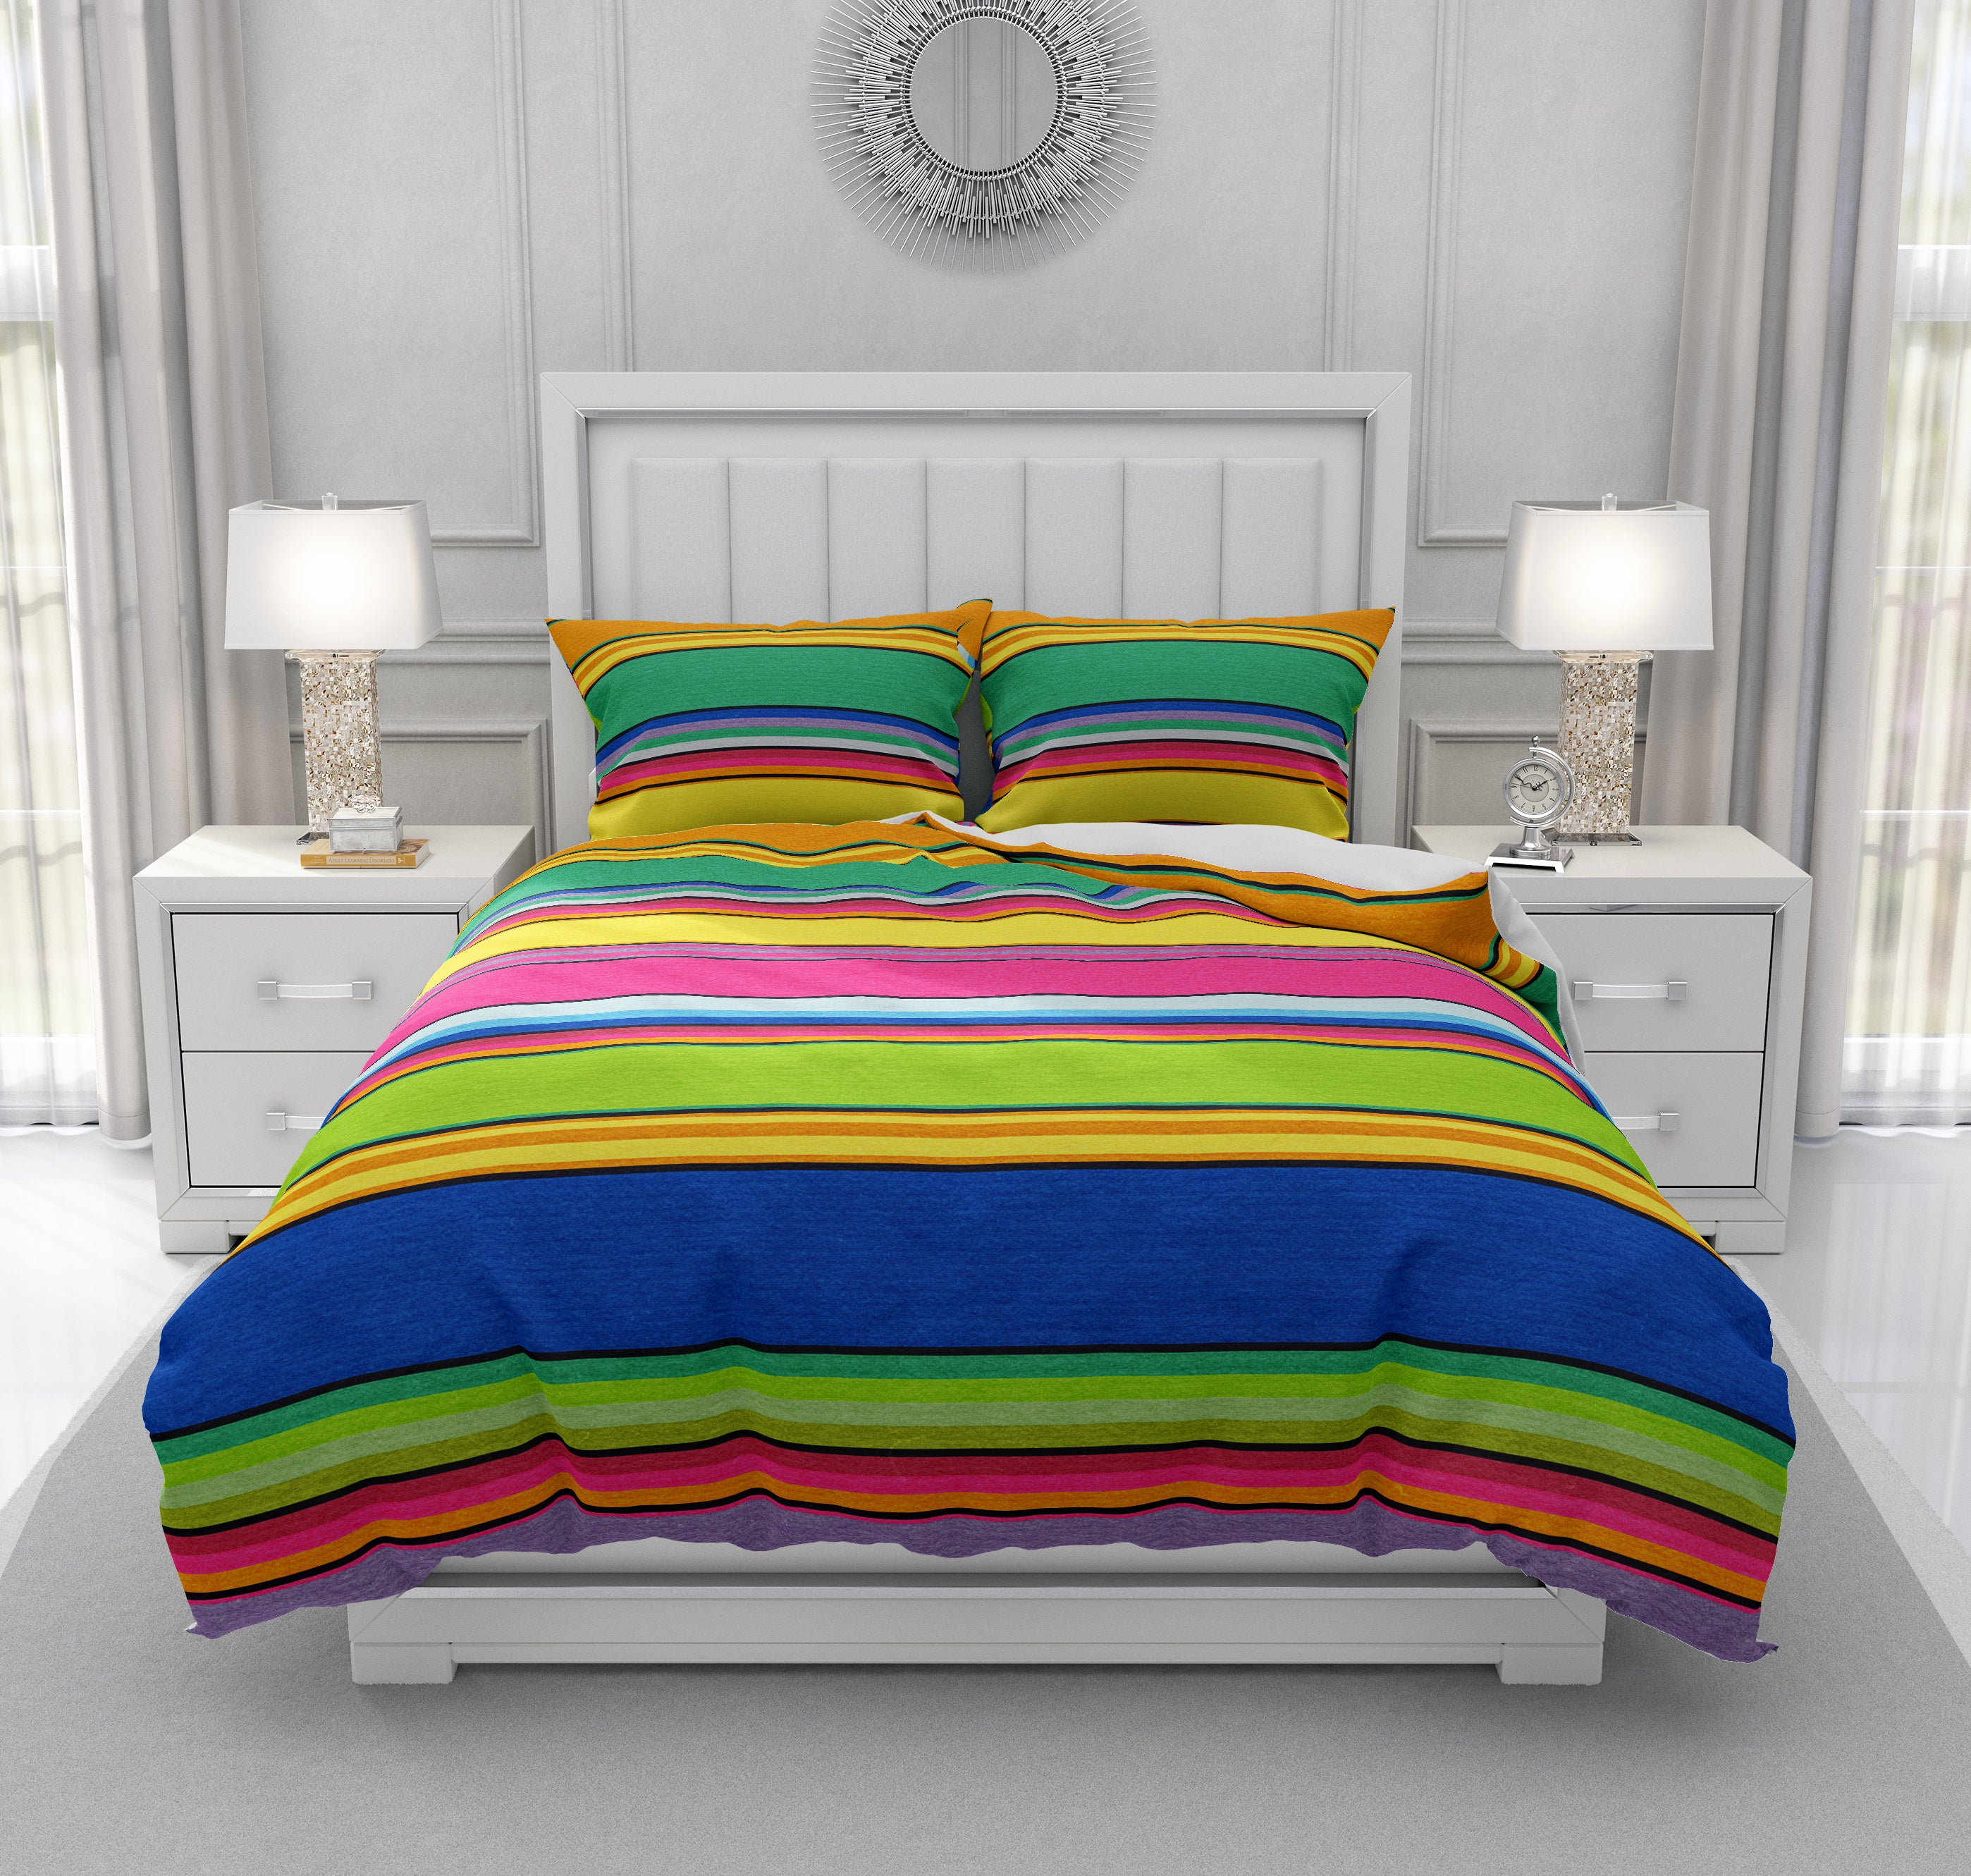 Fiesta Of Color Striped Bedding